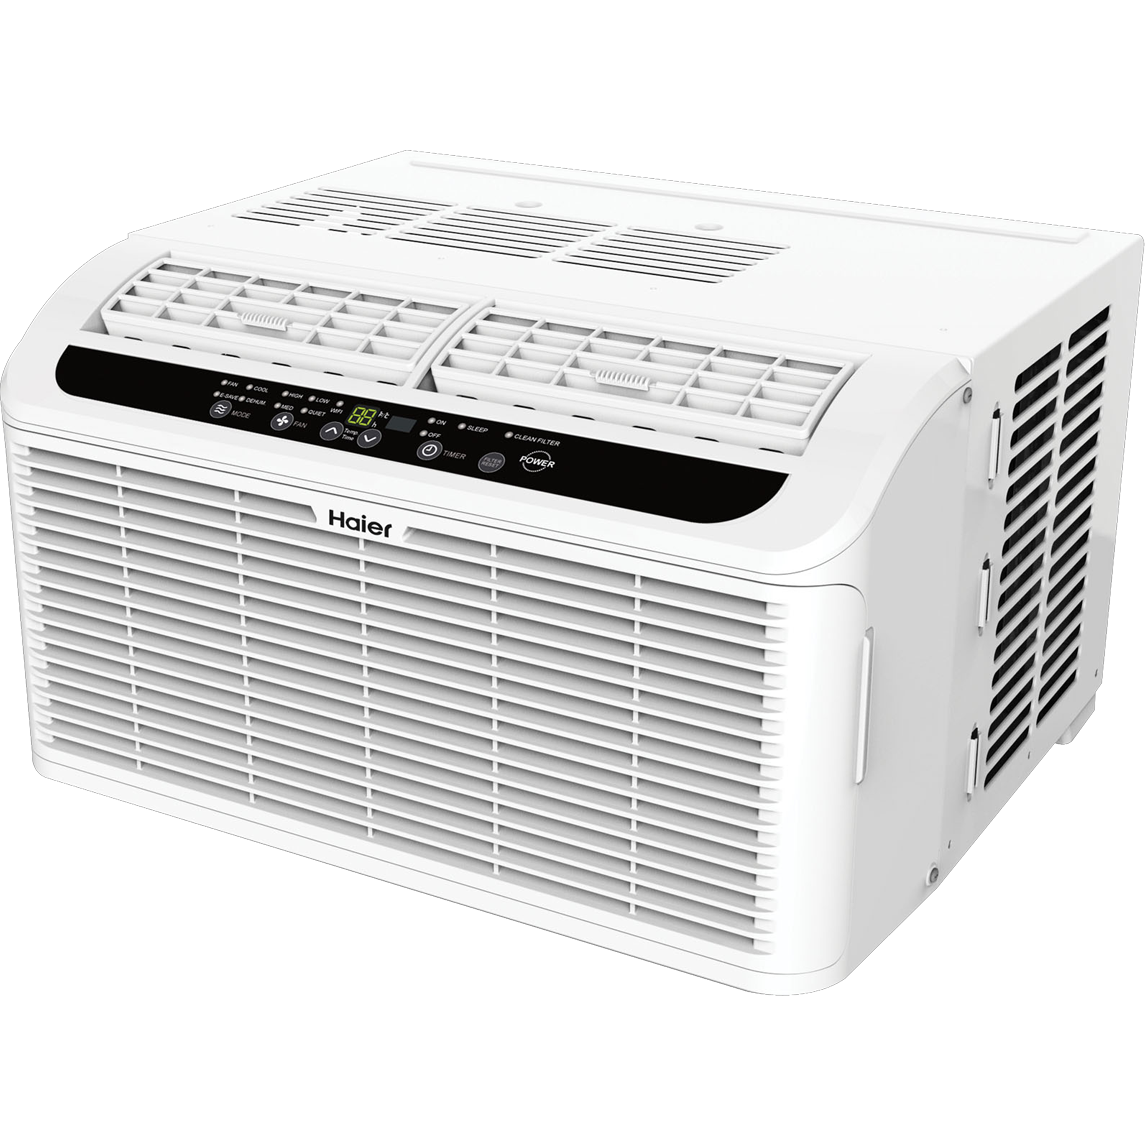 Esaq408p Haier 8 000 Btu Quiet Air Conditioner